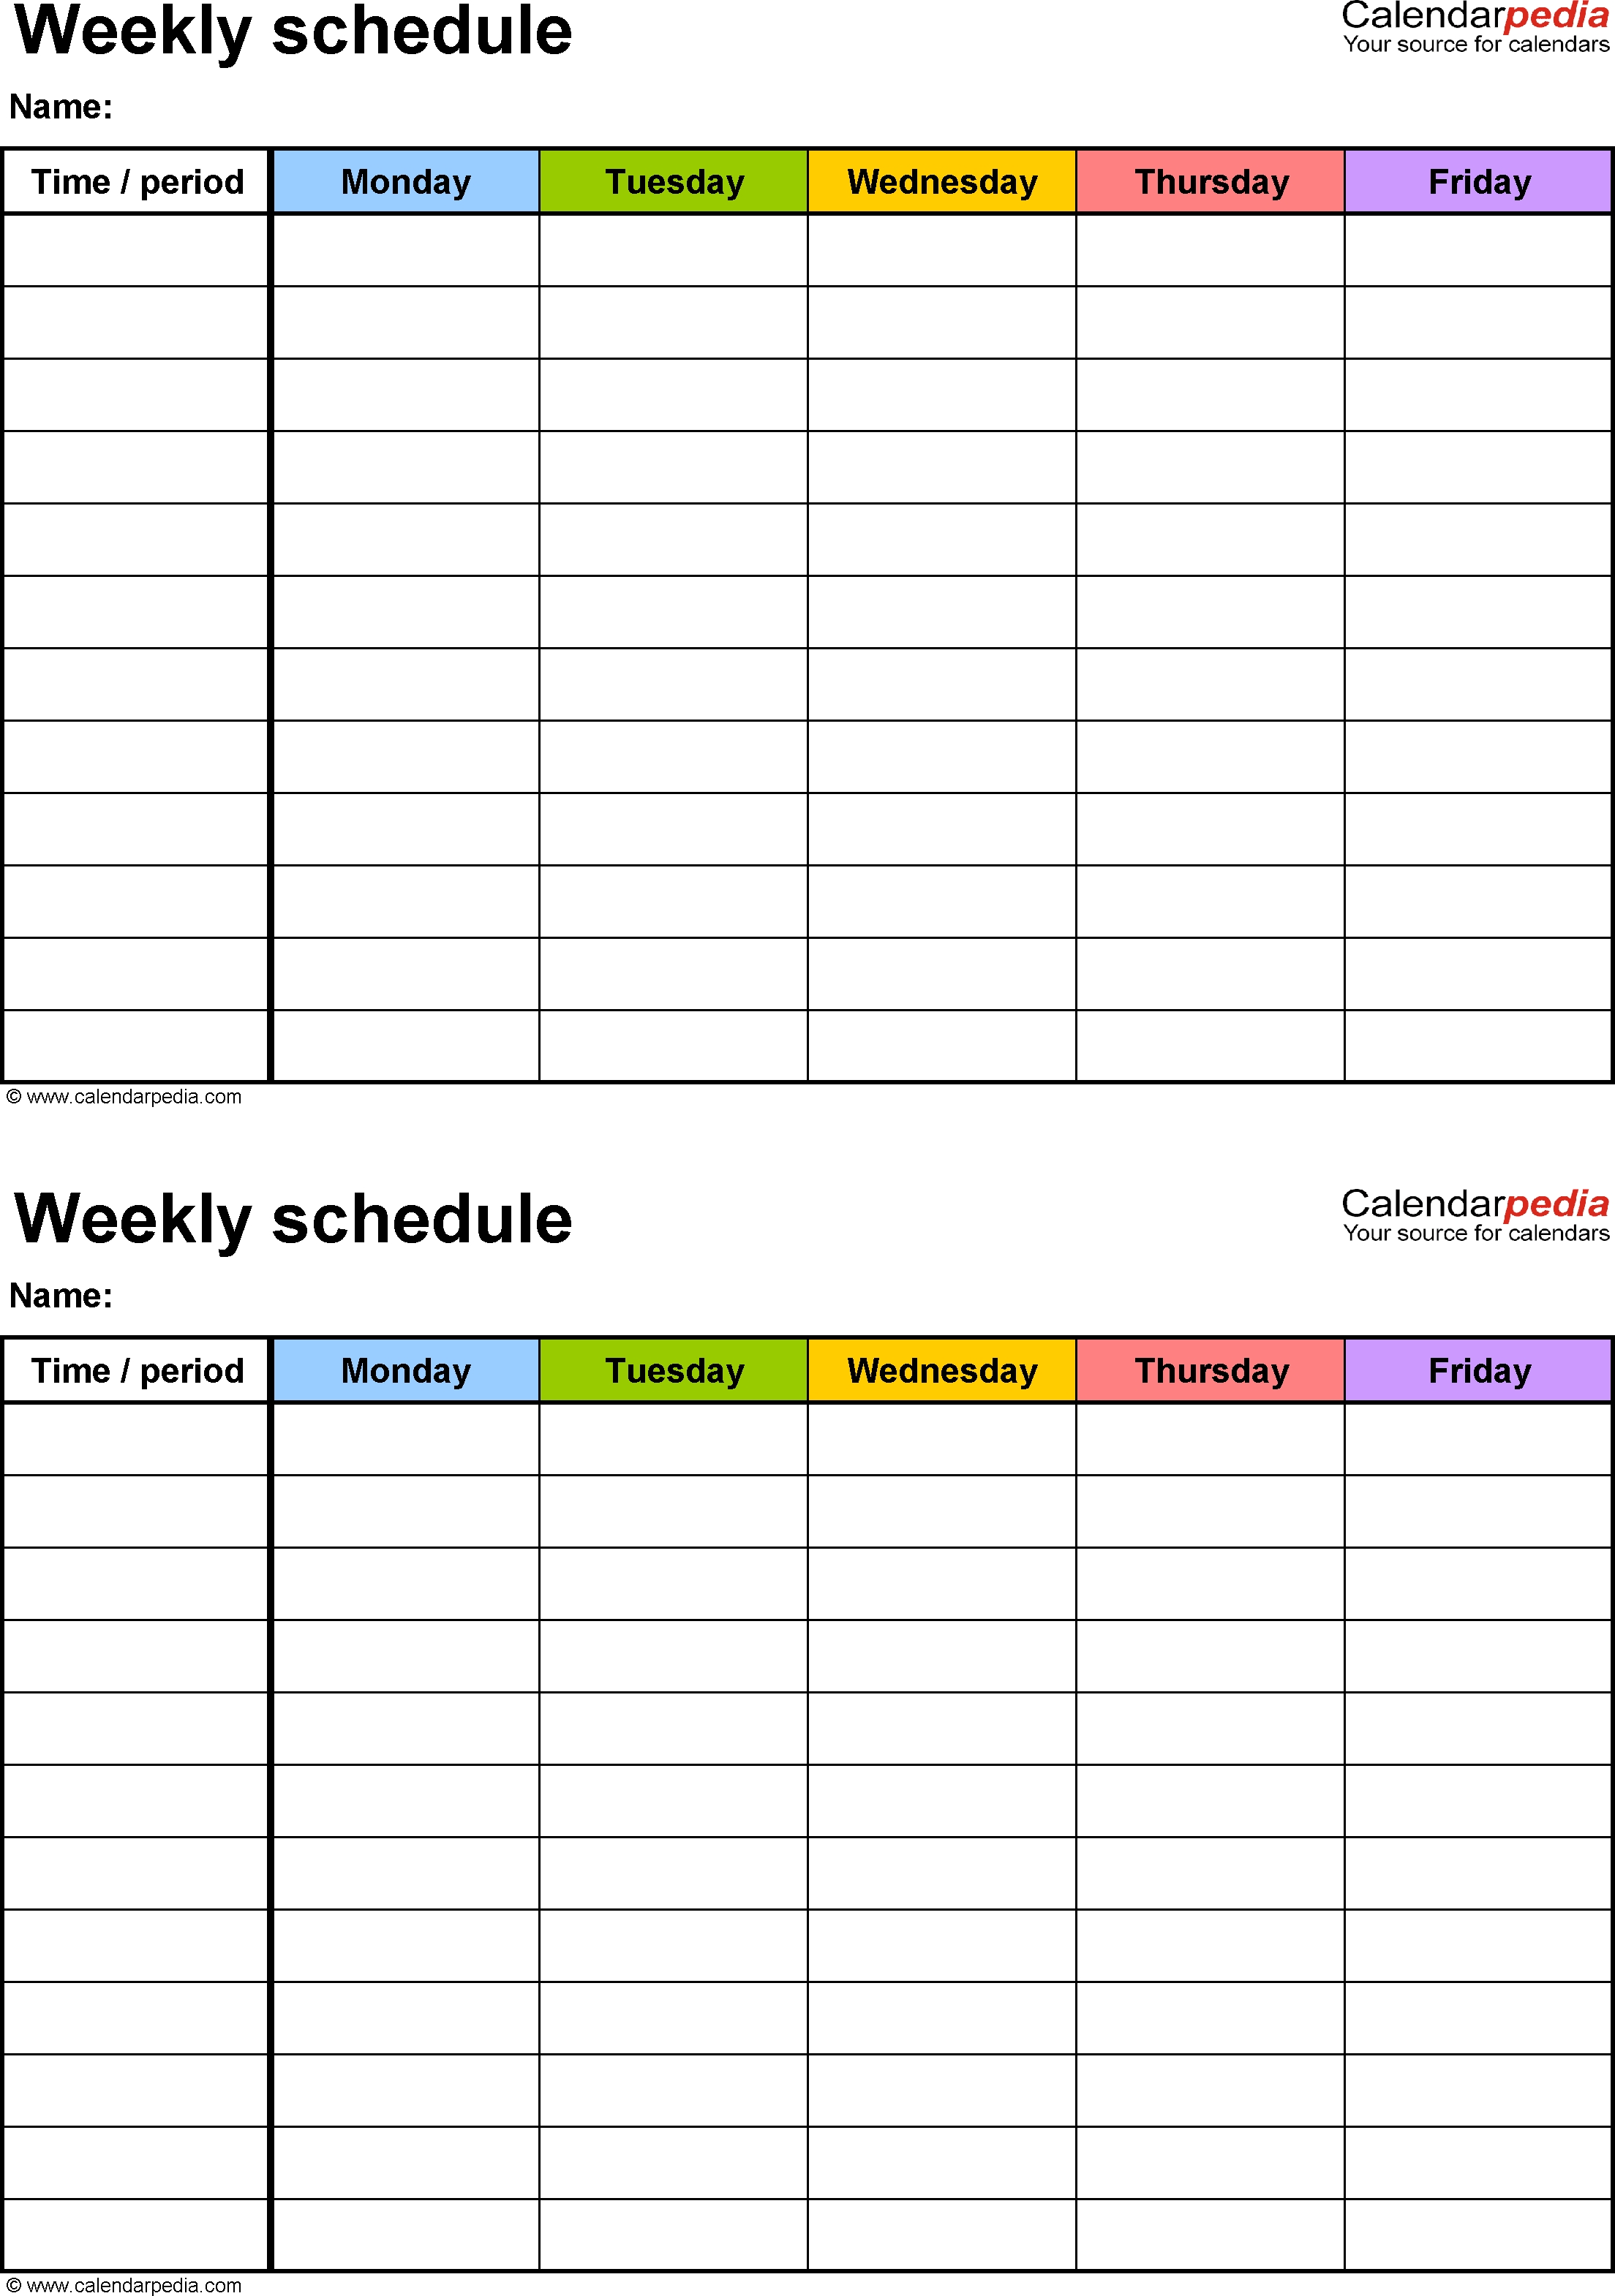 Free Weekly Schedule Templates For Word - 18 Templates for 5 Day Calendar Template Free